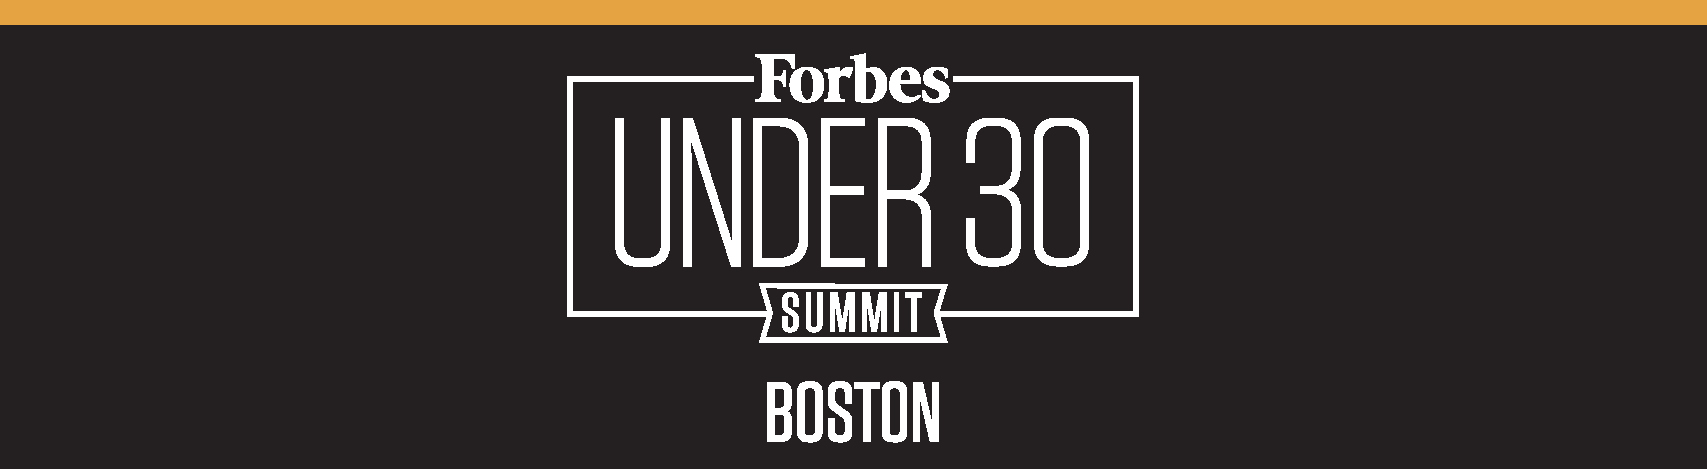 Under30Summit_Boston_LoadingHeader_Final.jpg